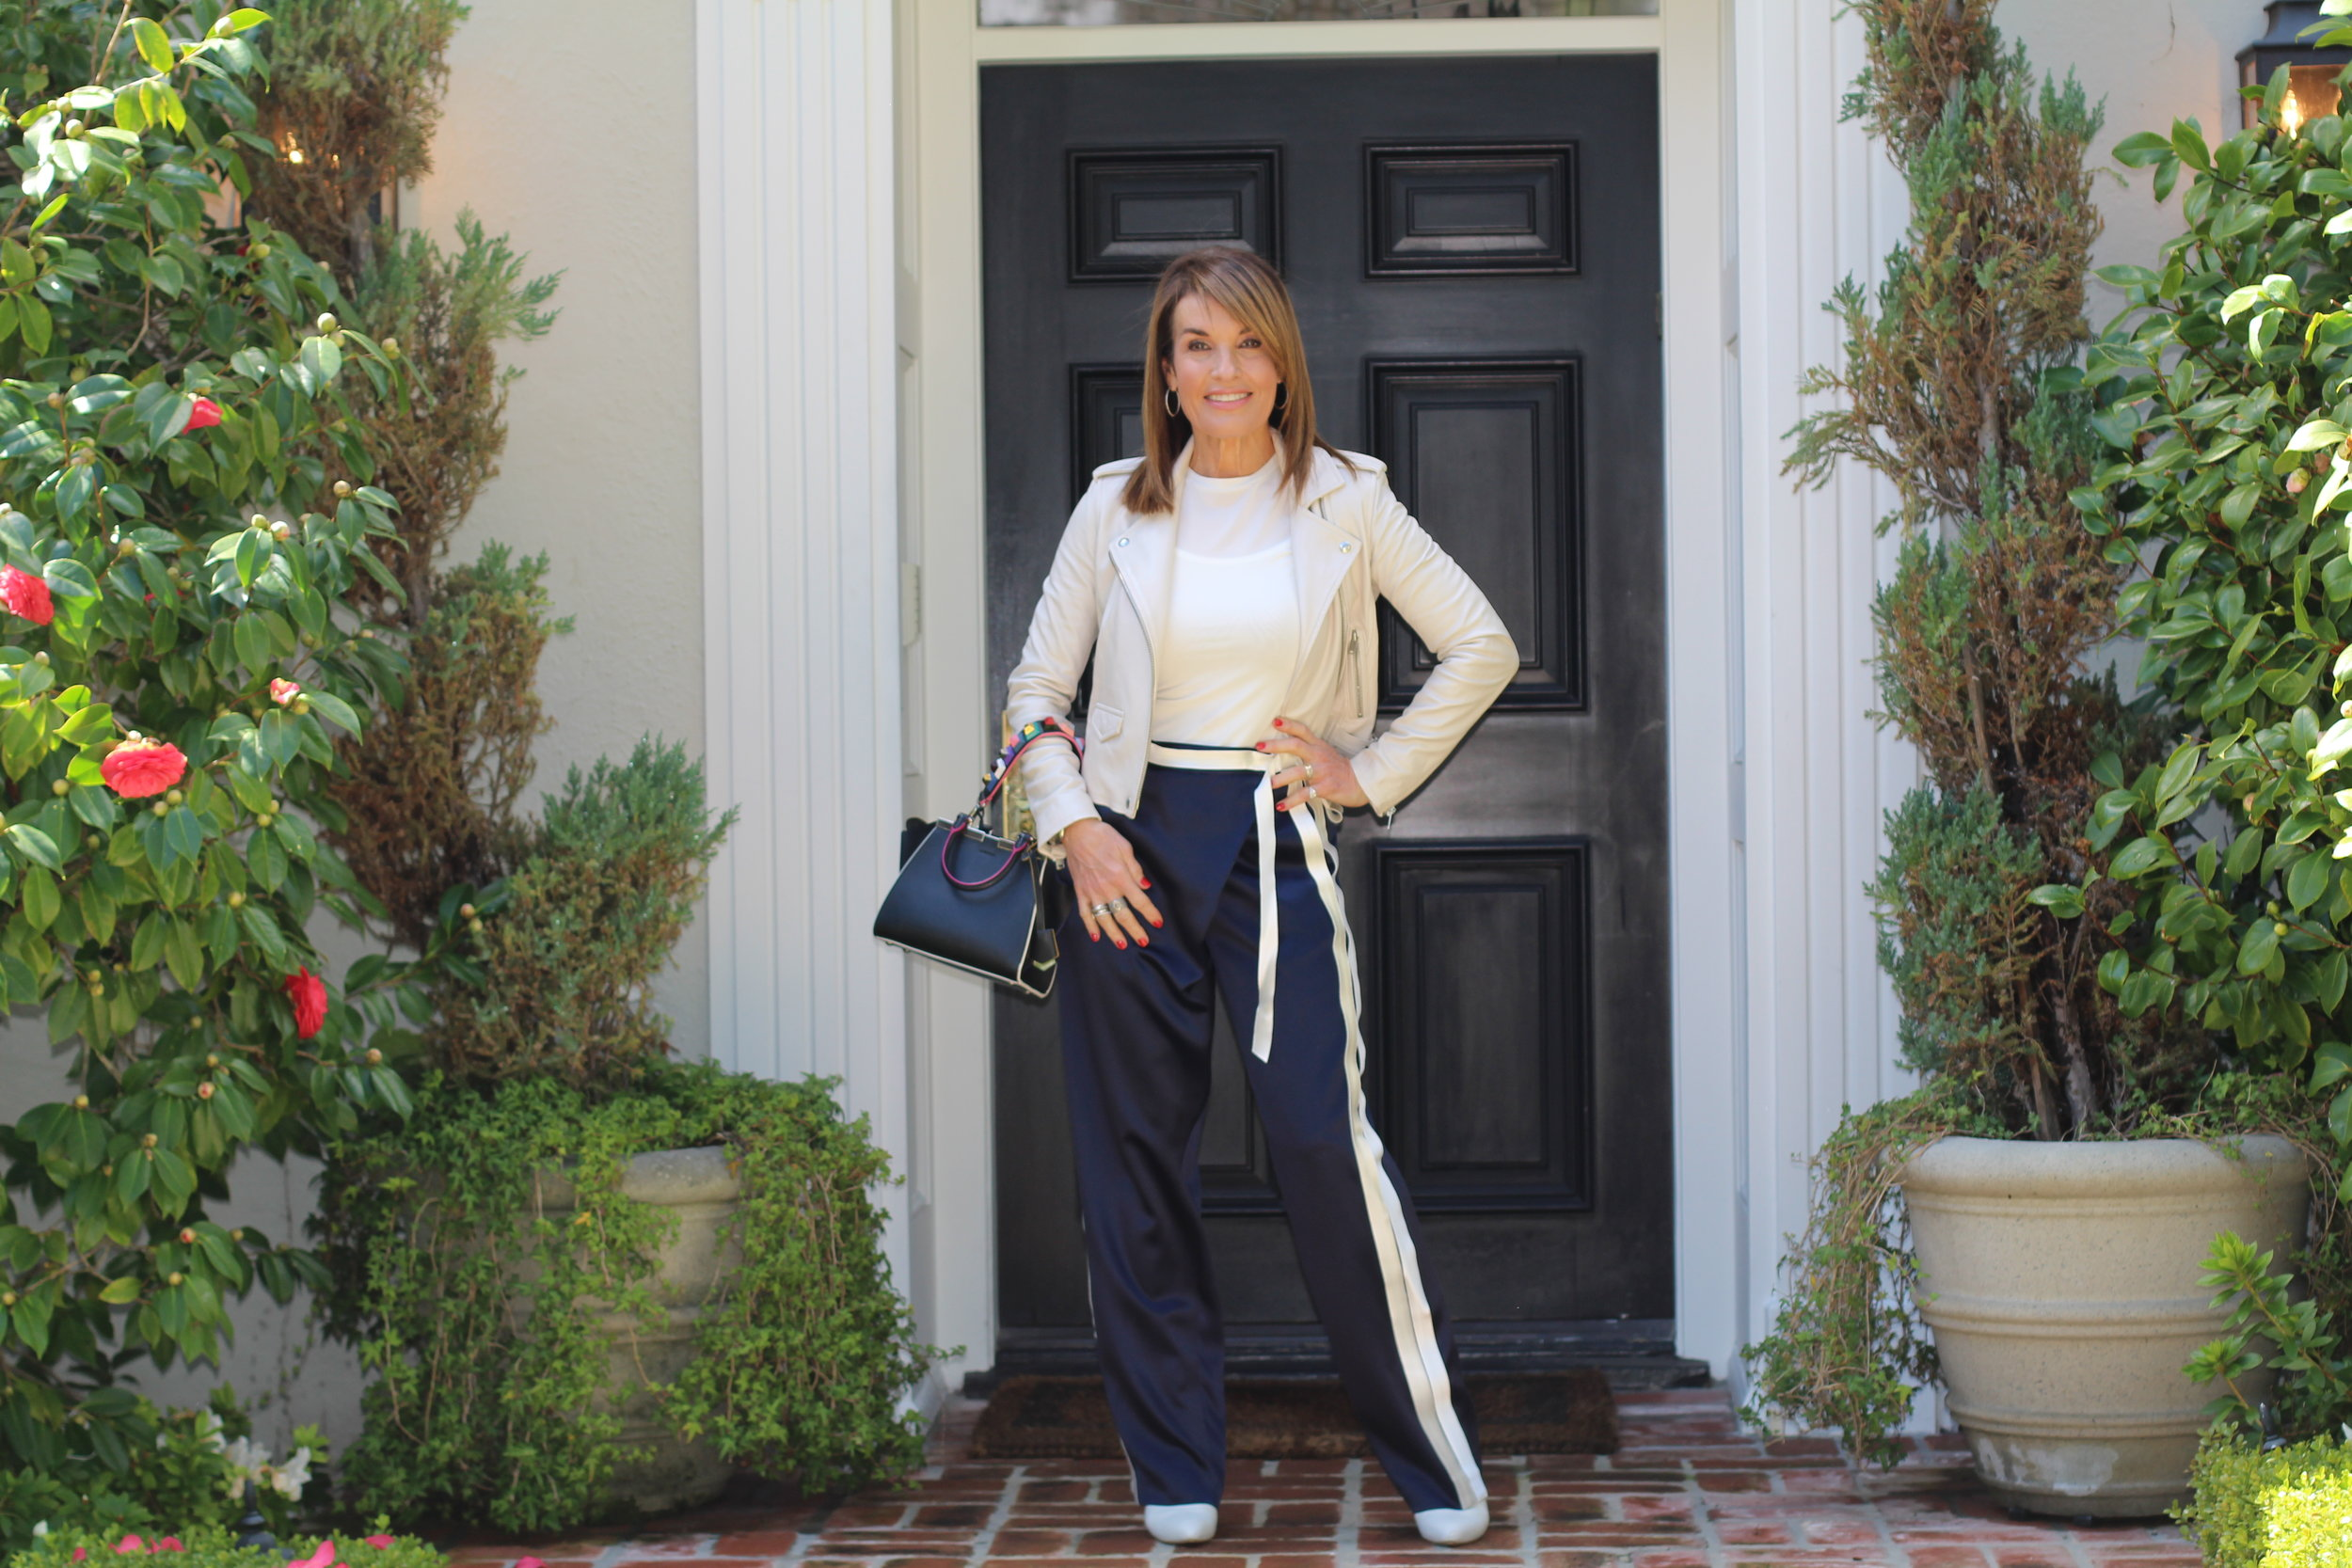 Dion Lee pants   ,    similar here       and here   , Max Mara tank and top,    similar here   ,    Iro jacket   ,     similar for less here,      Stuart Weitzman boots  , Fendi handbag